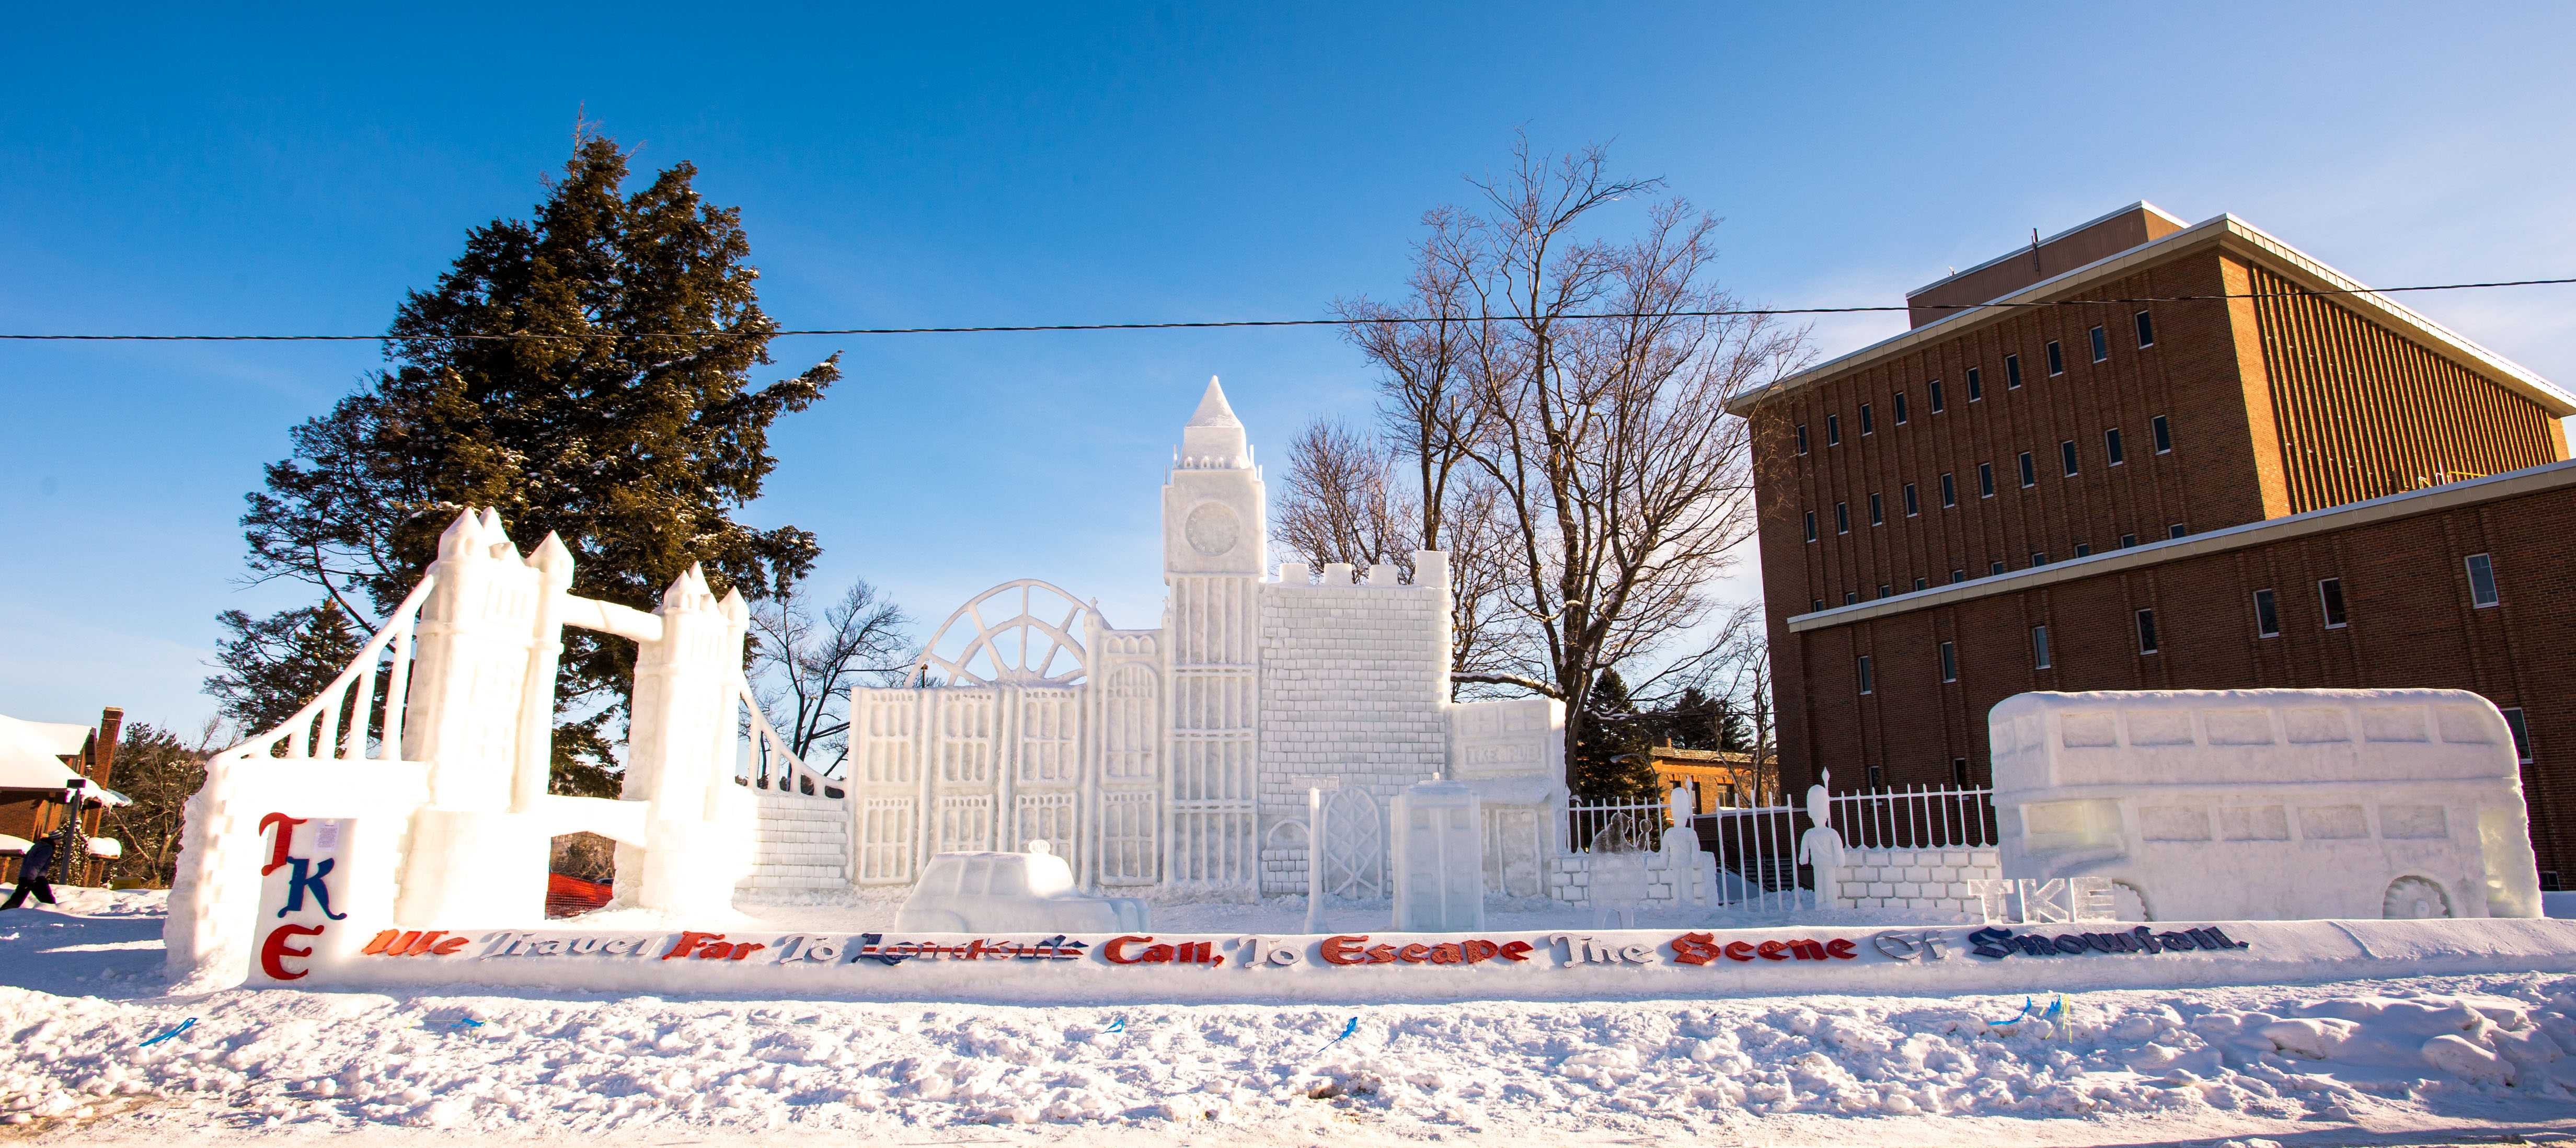 Winter Carnival 2018 Overview